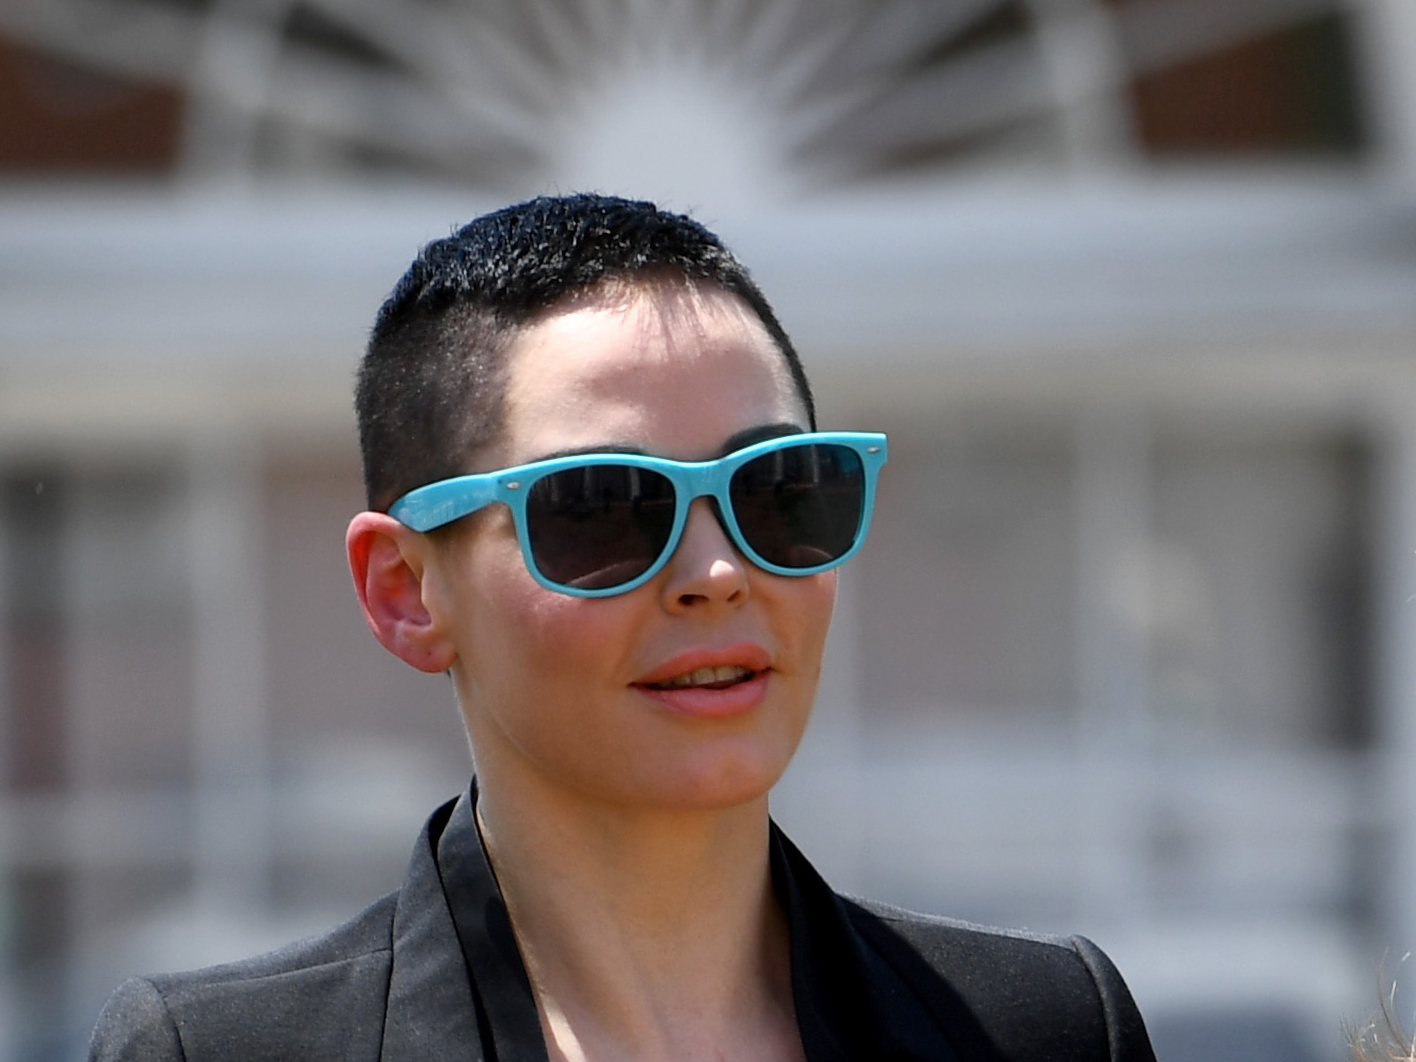 Nude, raw, honest? Rose McGowan just dropped a bombshell